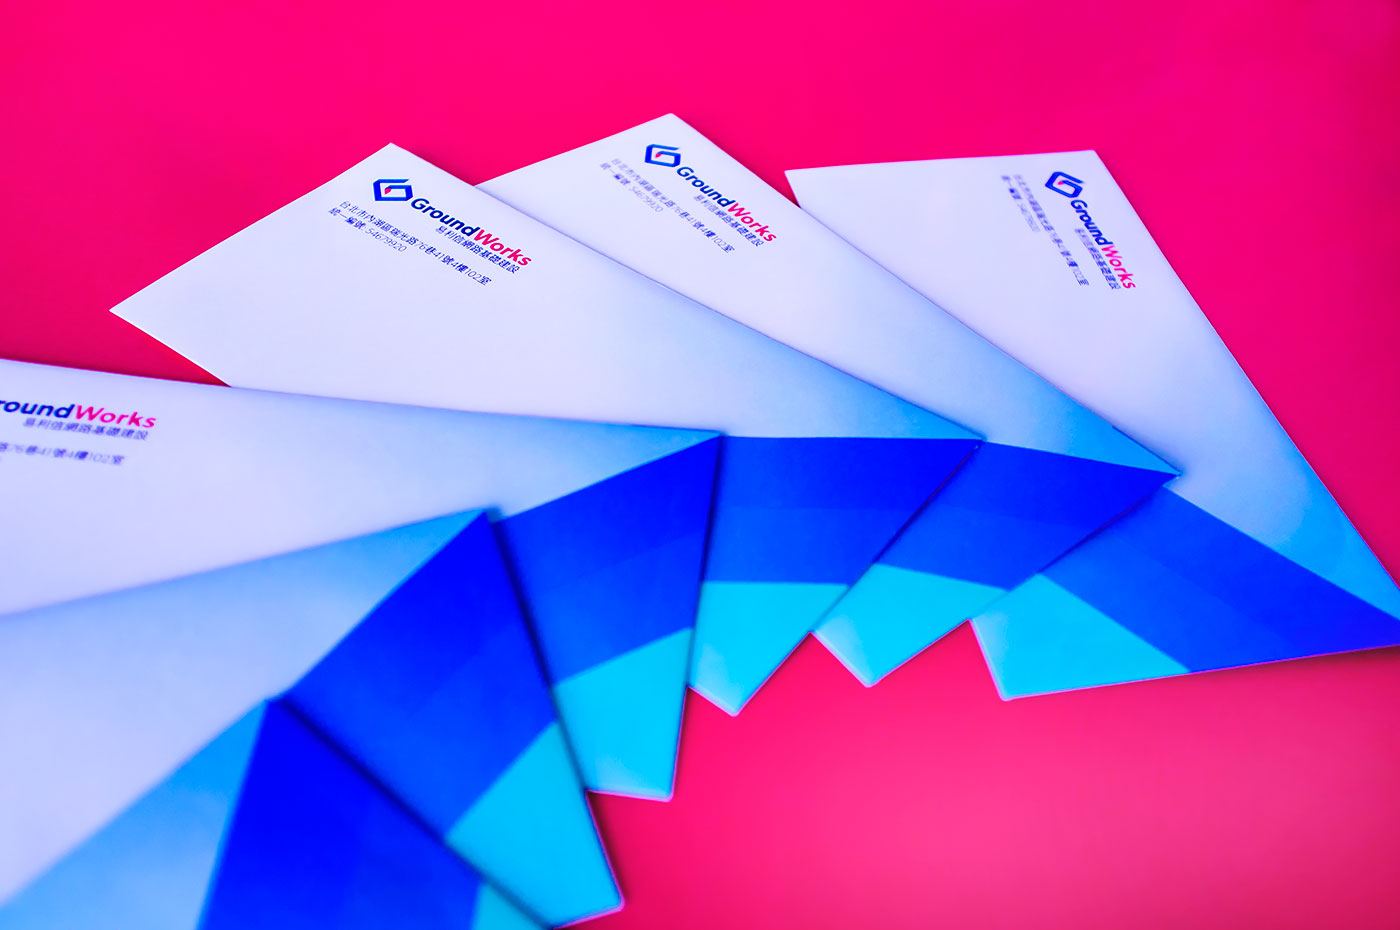 Outfit Branding & Design GroundWorks Envelopes